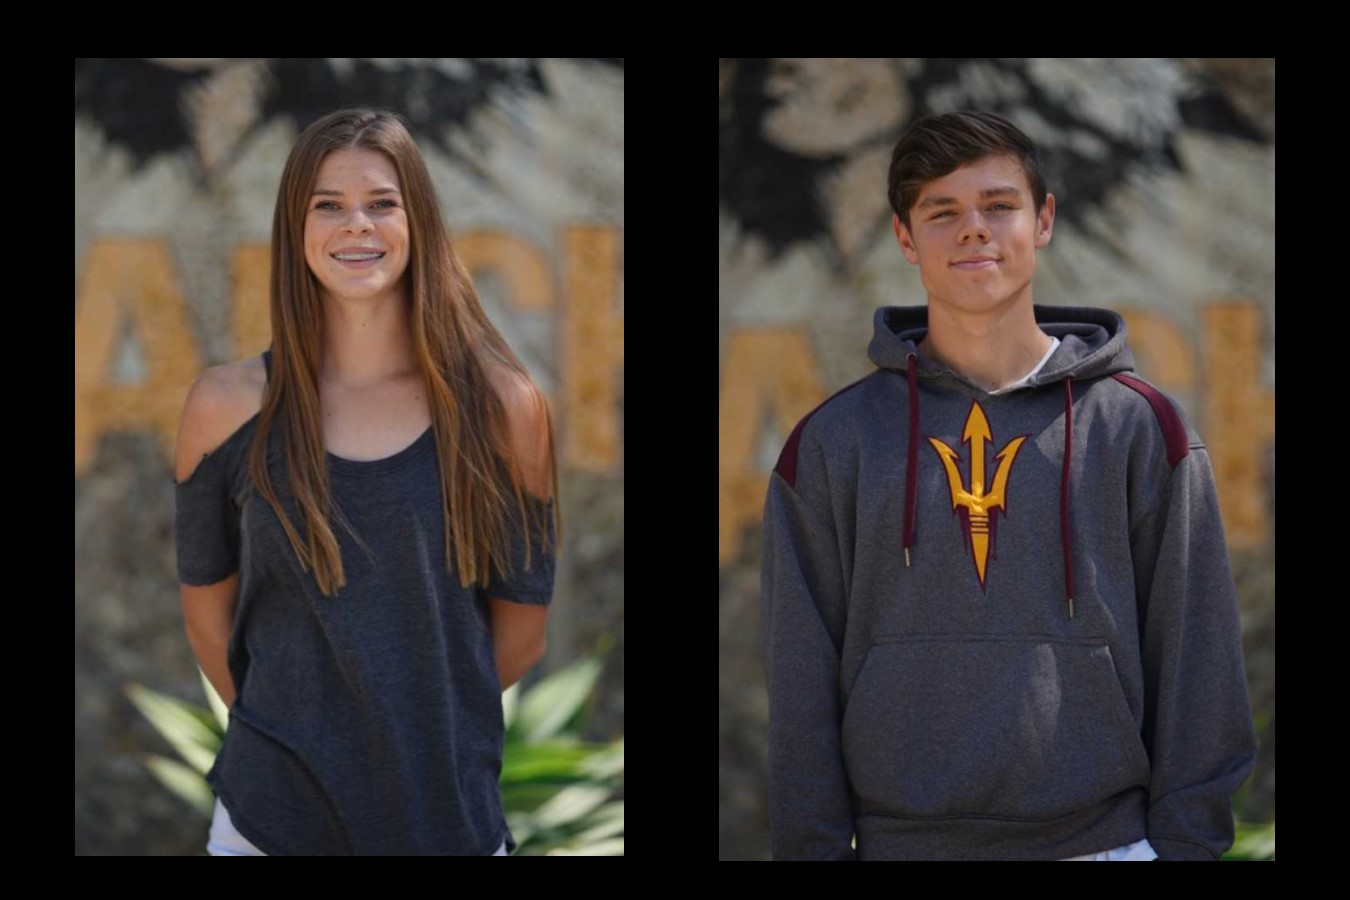 September Athletes of the Month: Emma Hadley and Joey Rouly